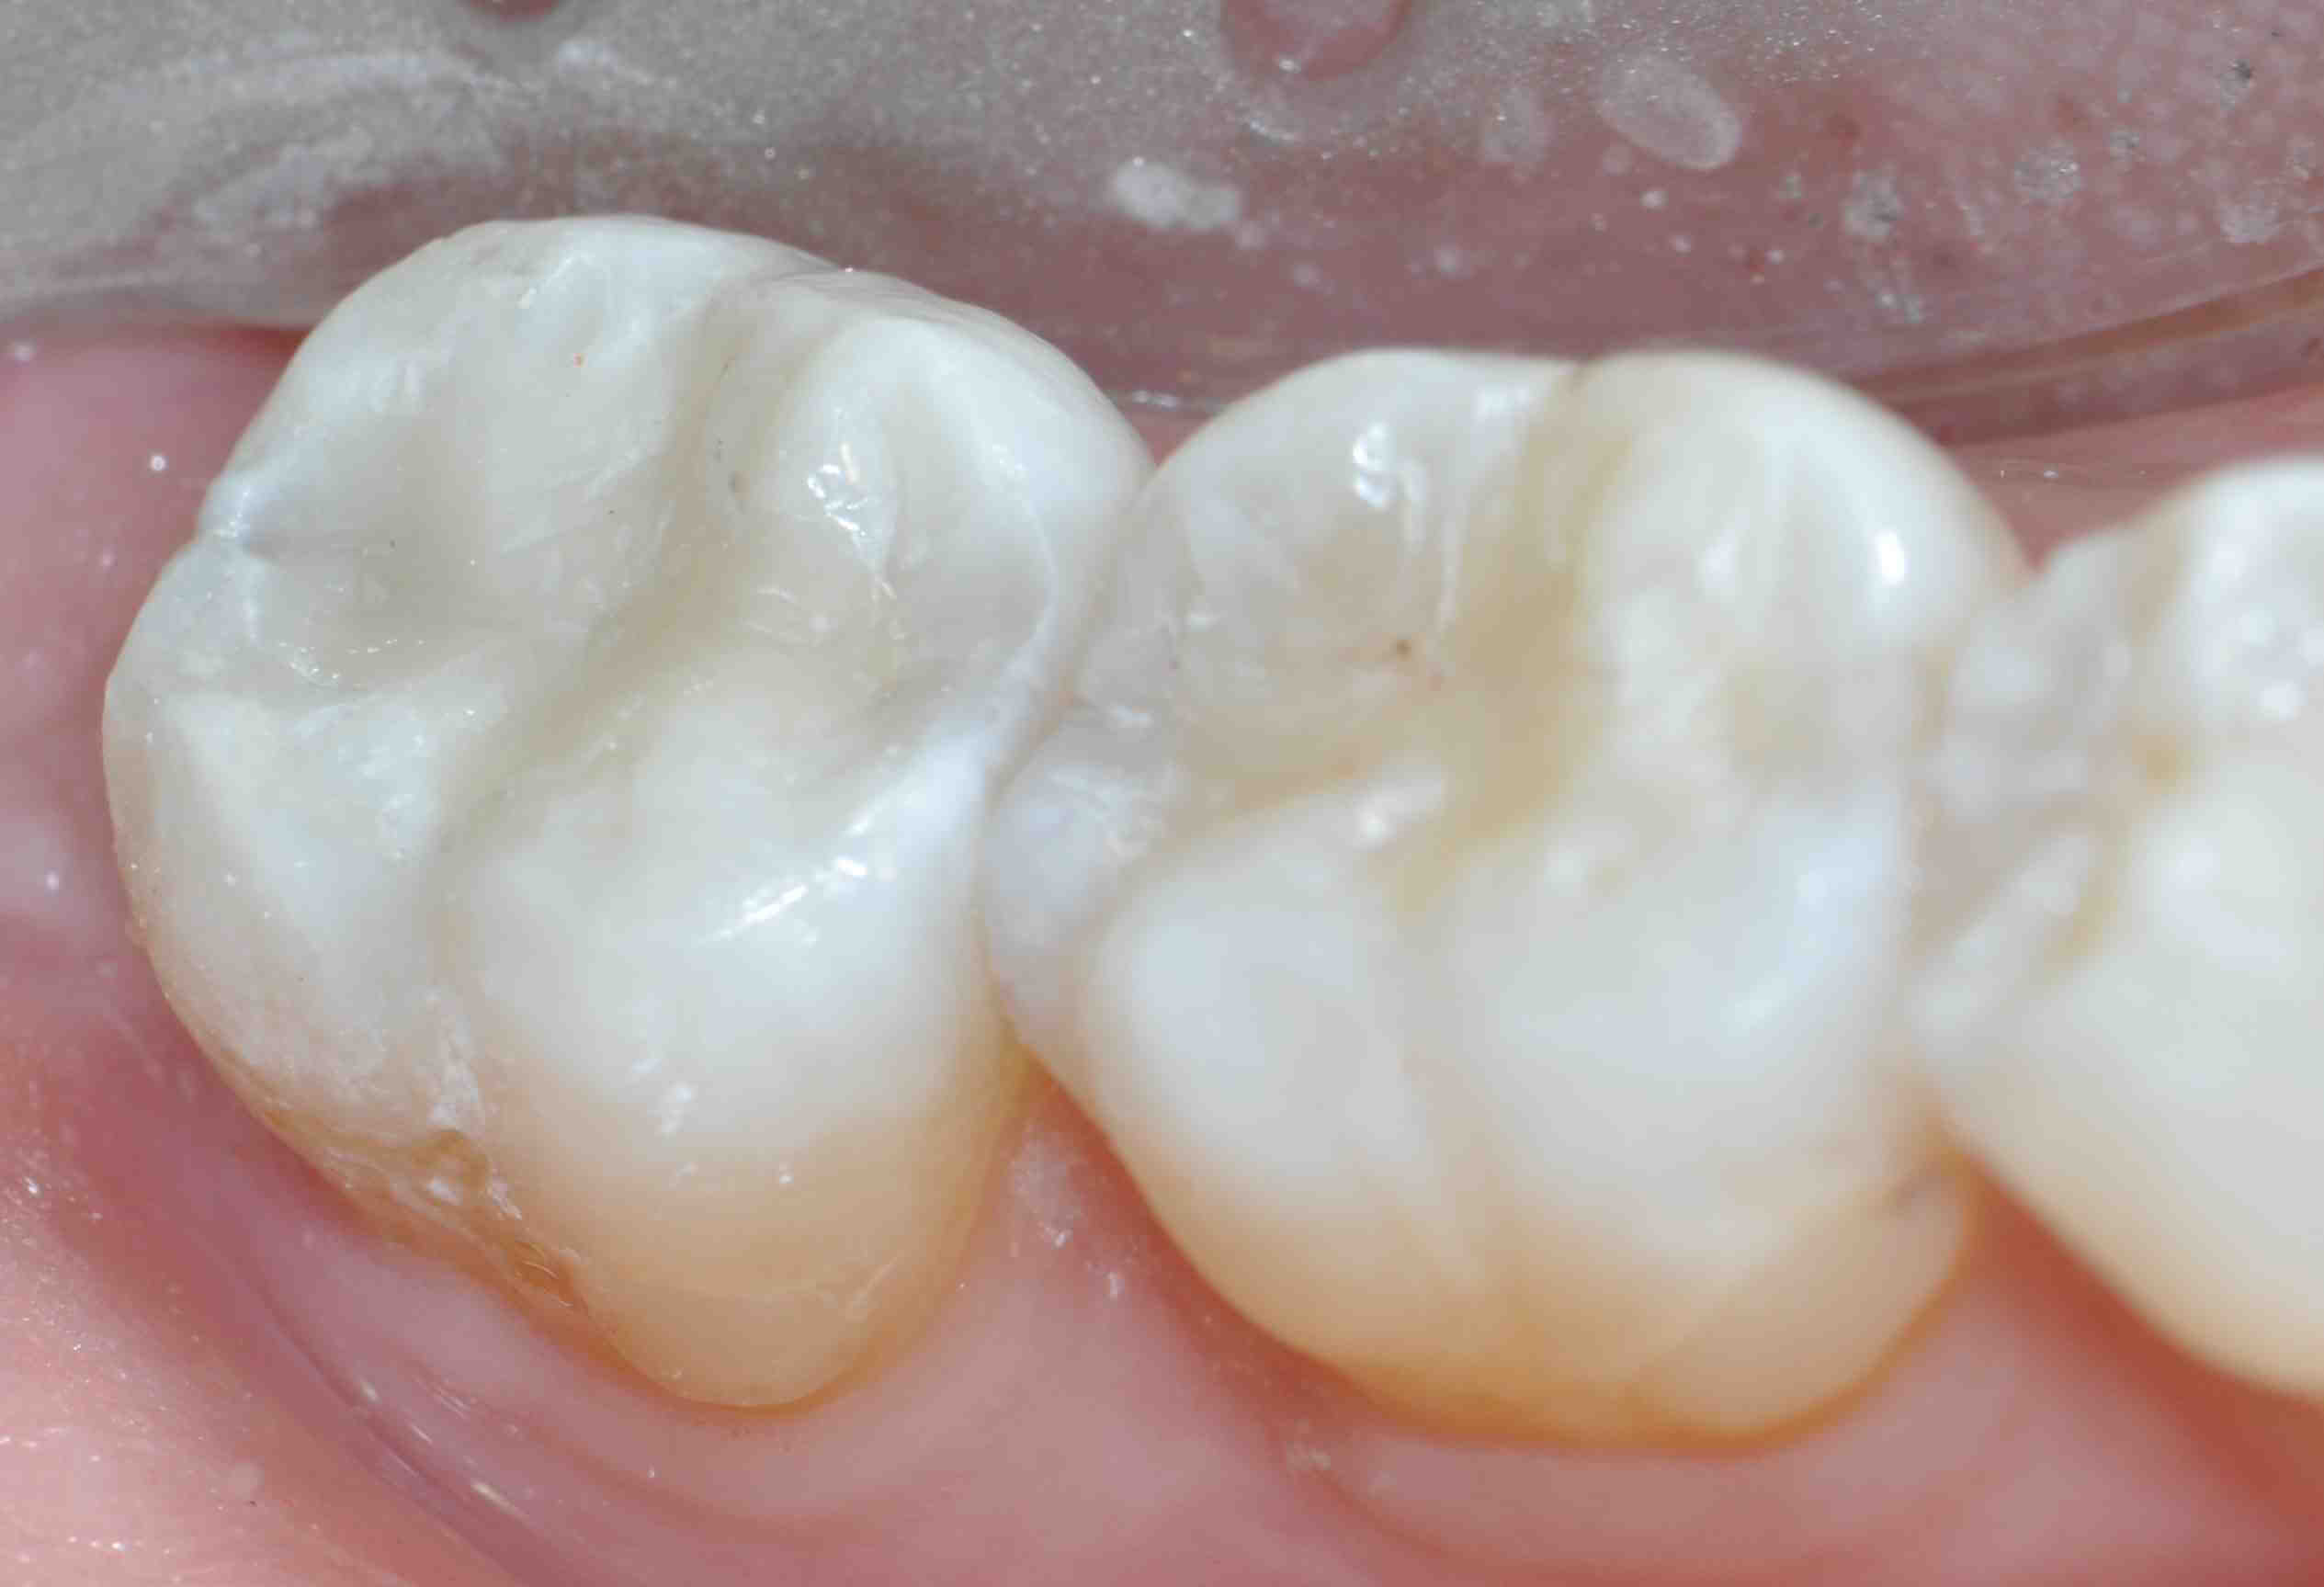 Posterior Composite Prep Bevels: Yes or No?